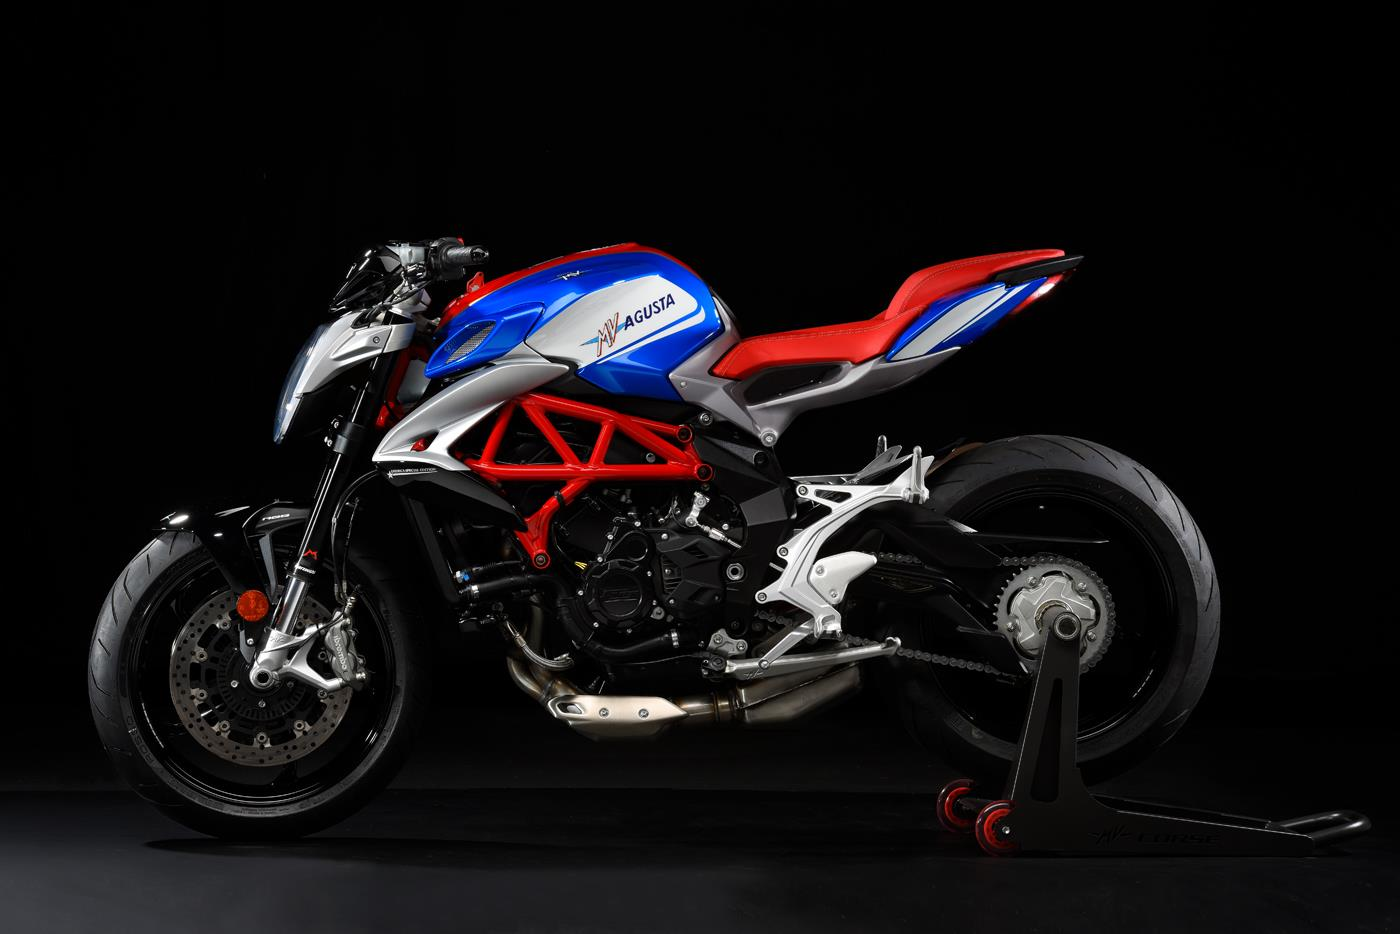 mv agusta brutale 800 america revealed mcn. Black Bedroom Furniture Sets. Home Design Ideas